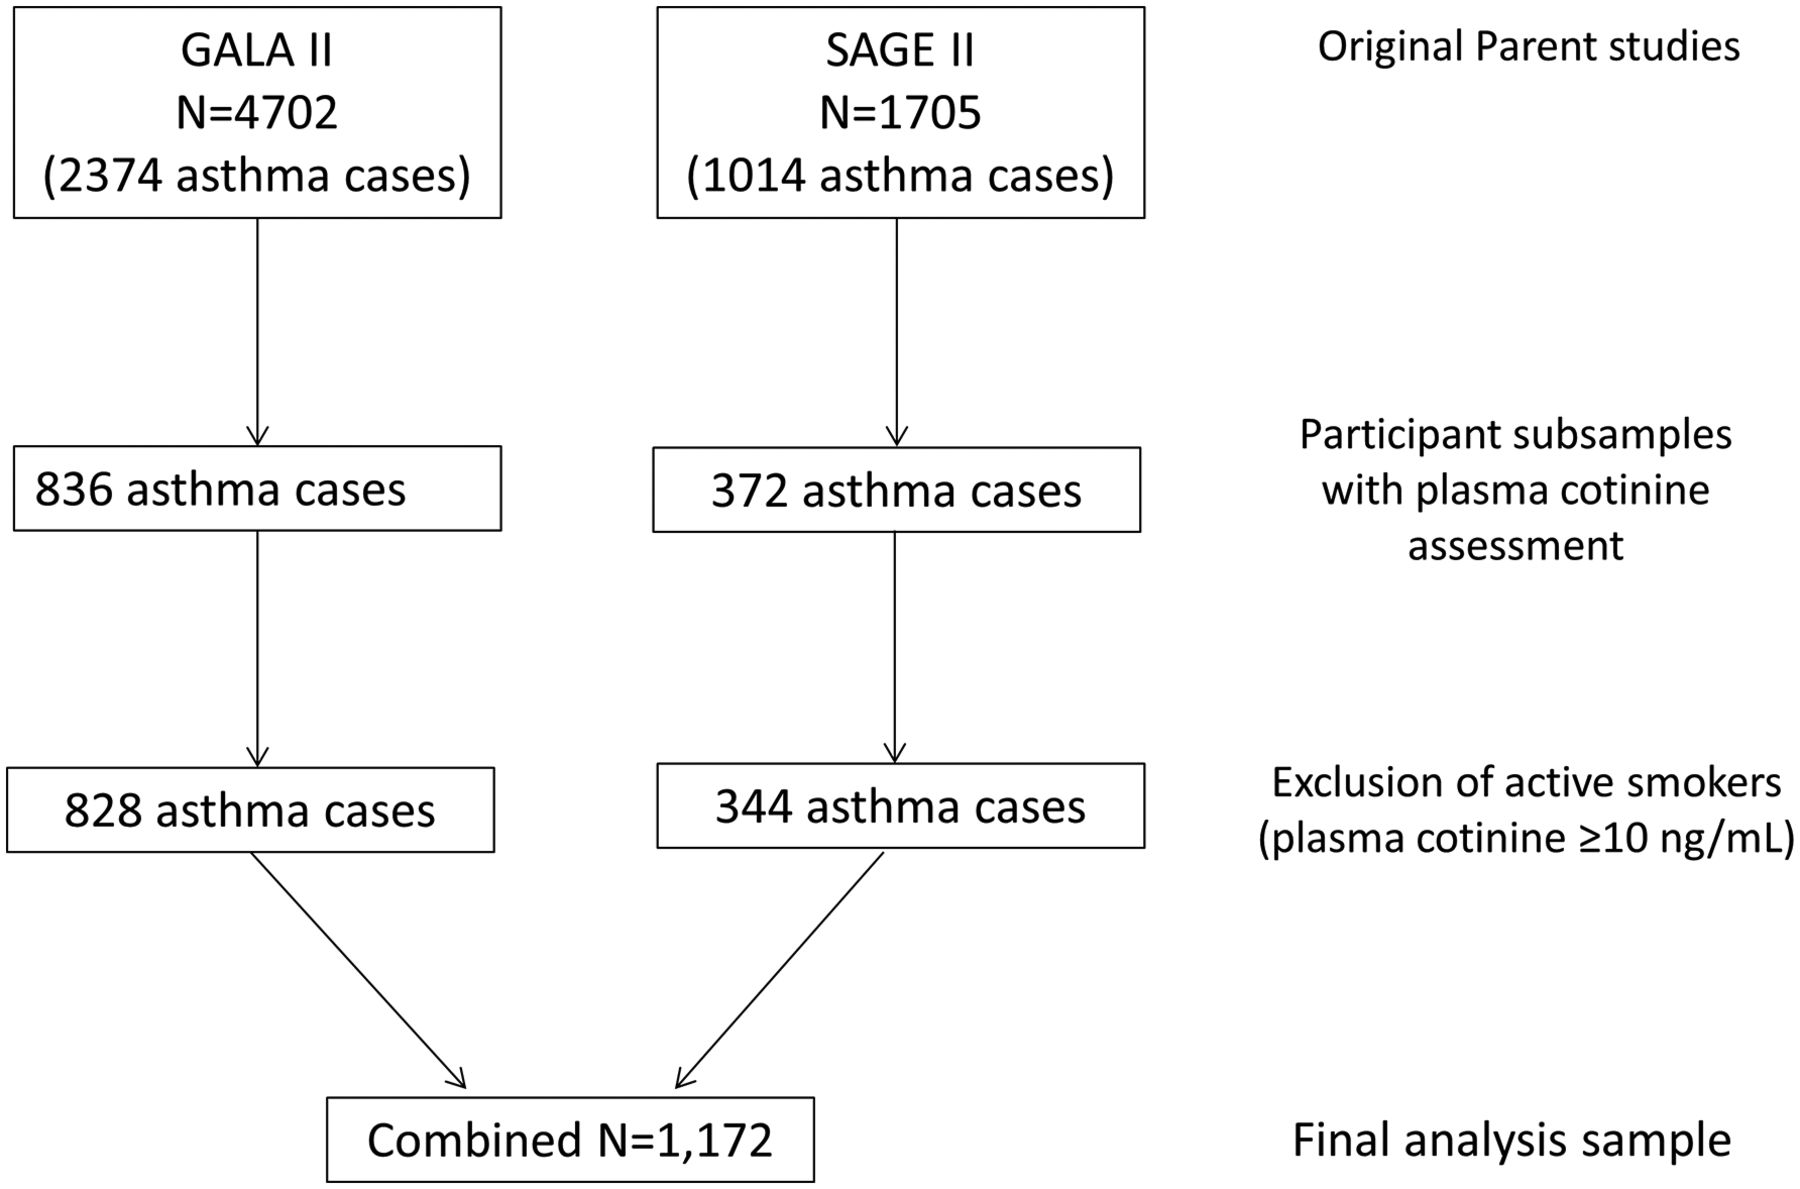 Secondhand smoke exposure and asthma outcomes among African